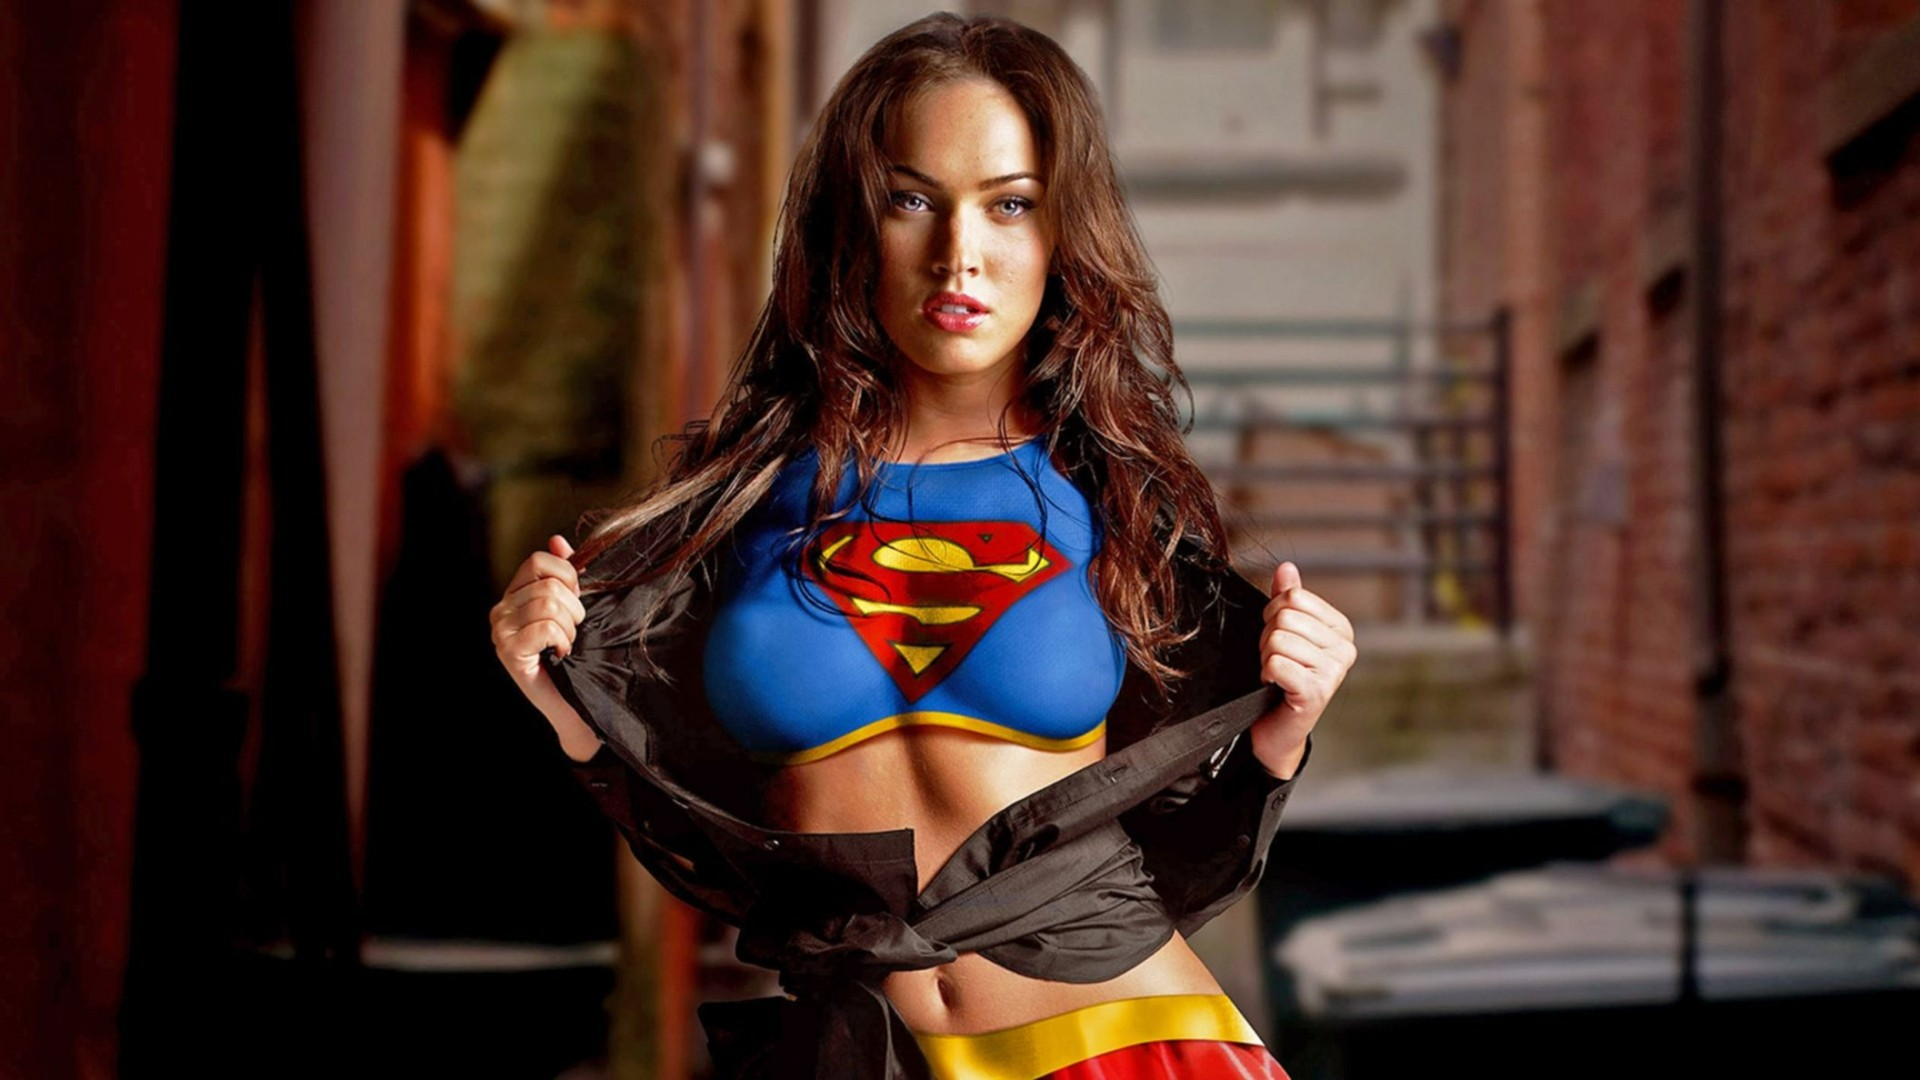 Megan Fox Supergirl Original 1080p Wallpaper